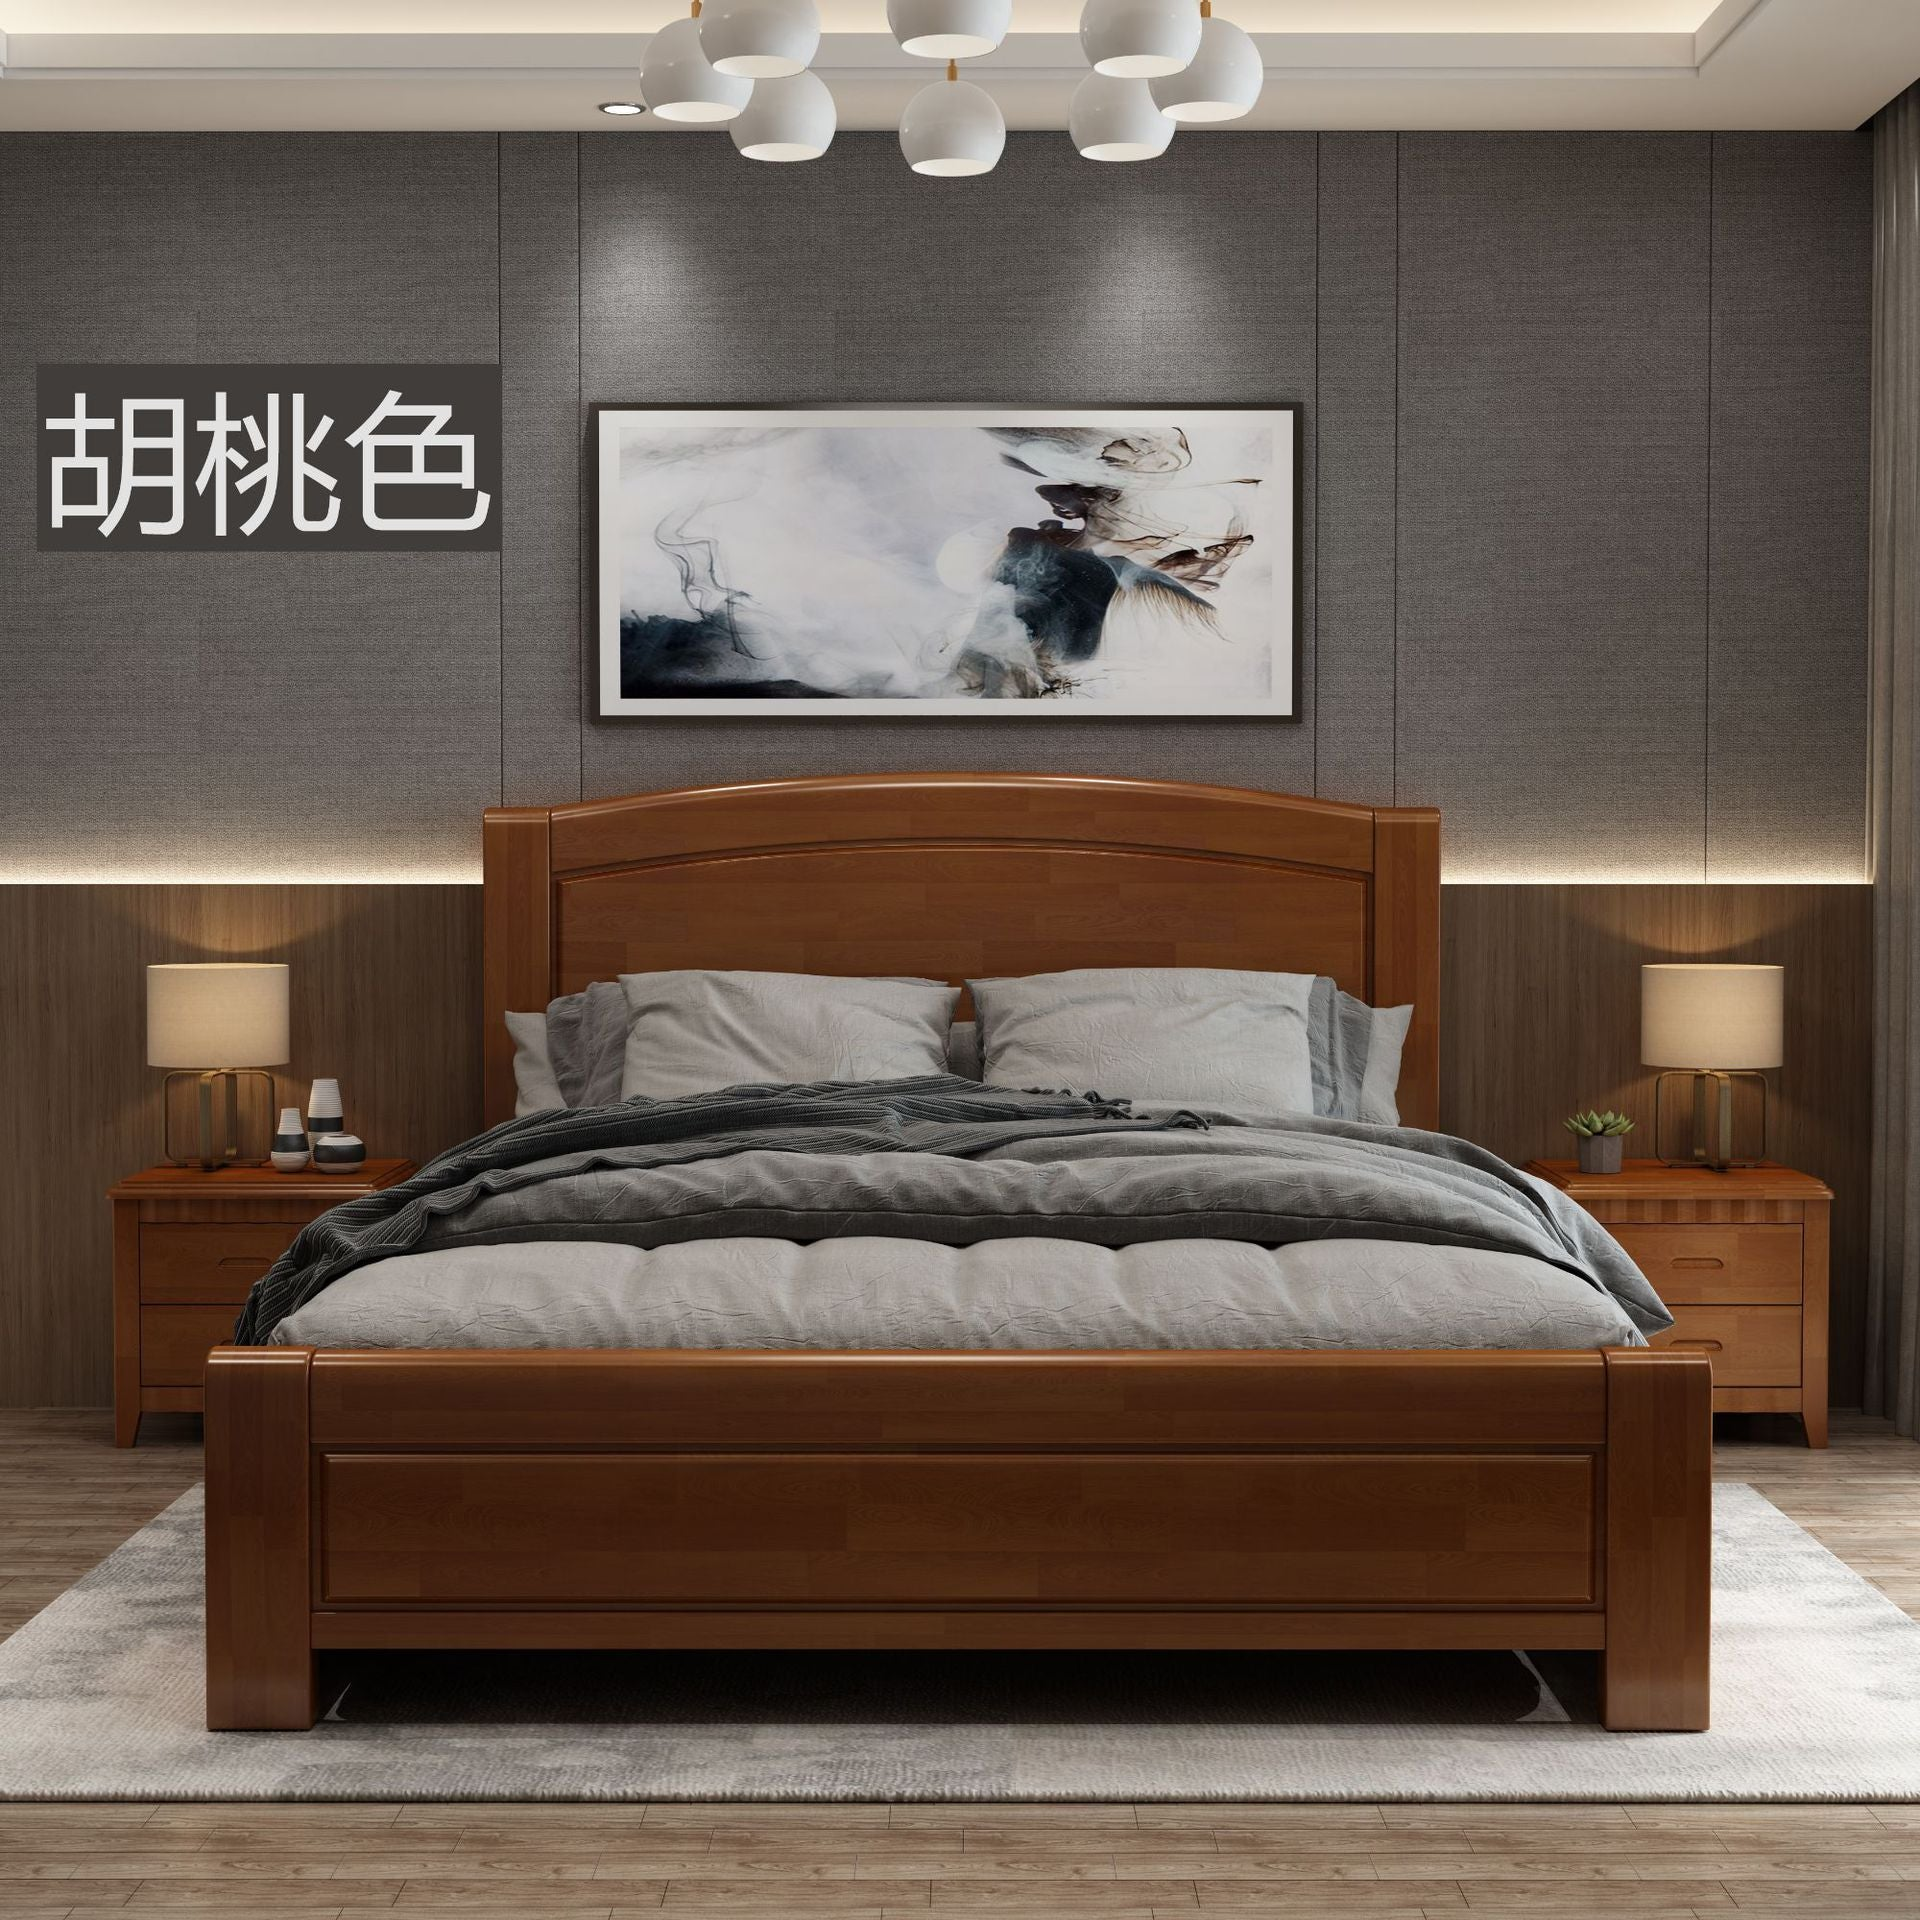 1 2 M New Chinese Style Solid Wood Bed 1 35 Modern Simple 1 8 M Double Kartzapper Com